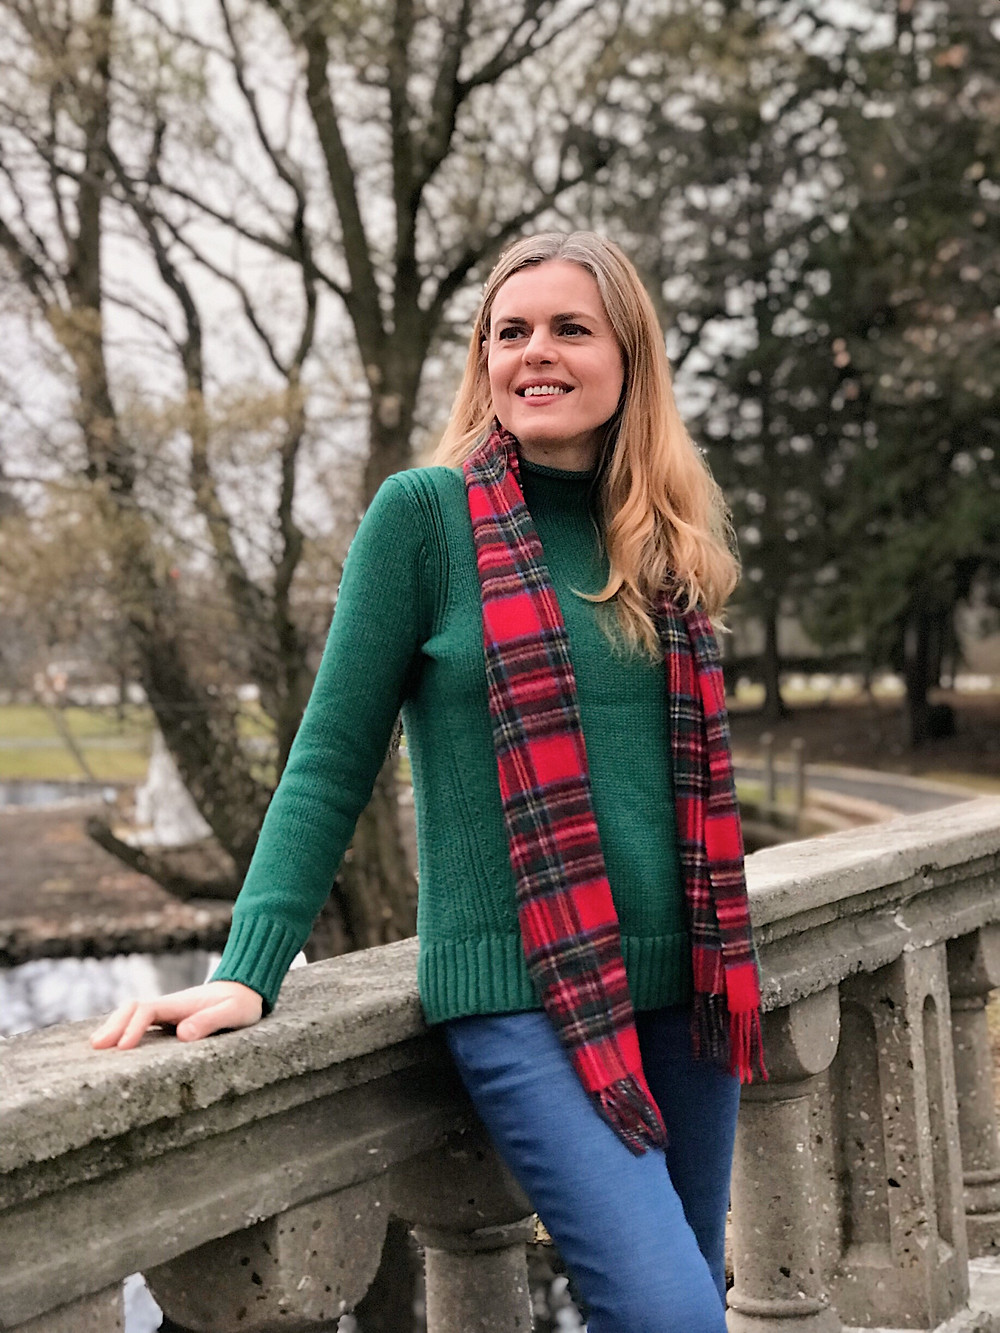 blond woman in green sweater and red plaid scarf